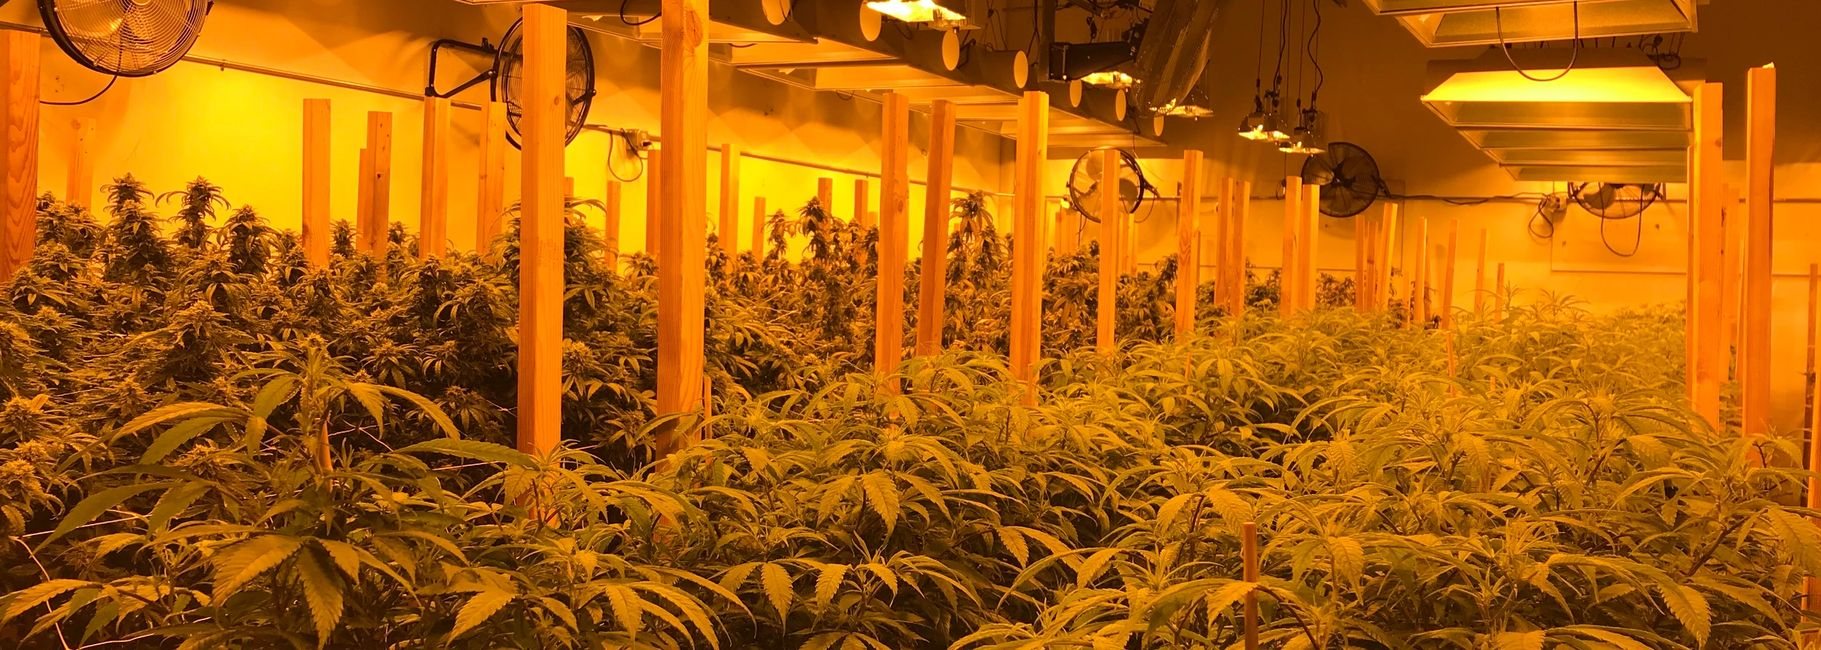 Large number of cannabis plants in growing facility.